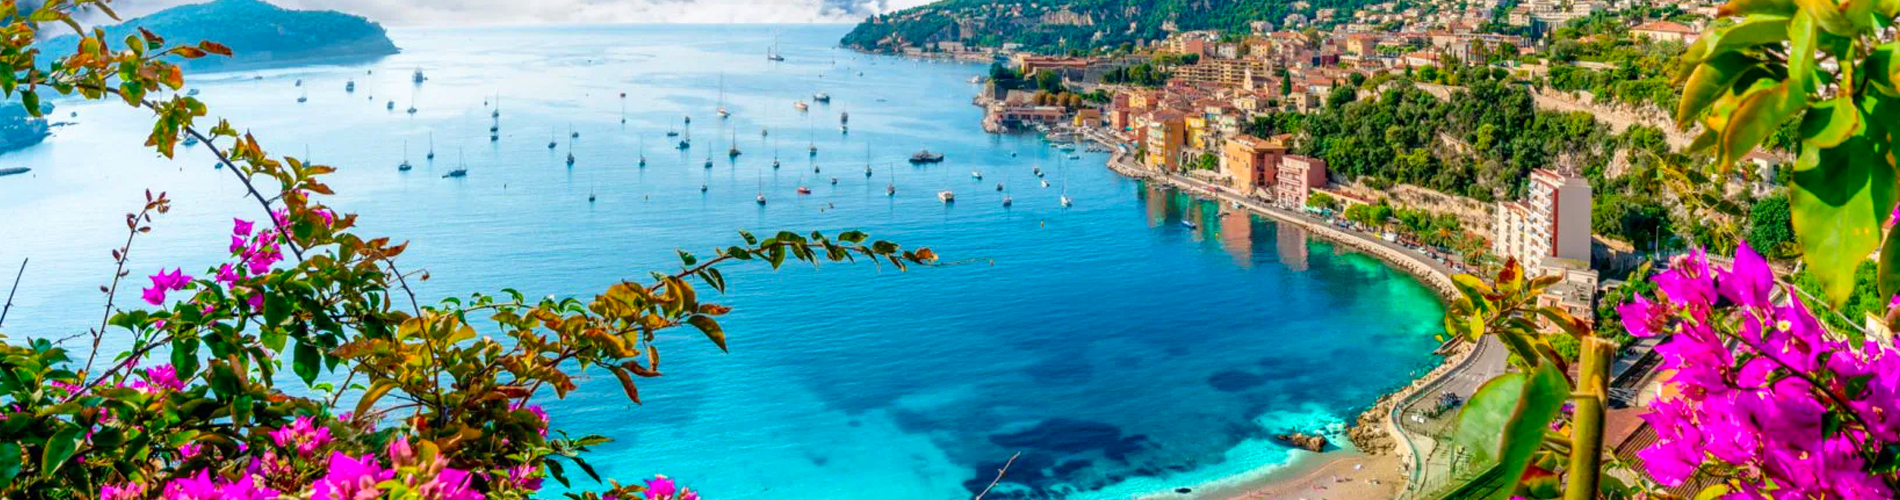 1900x500_top21frenchriviera